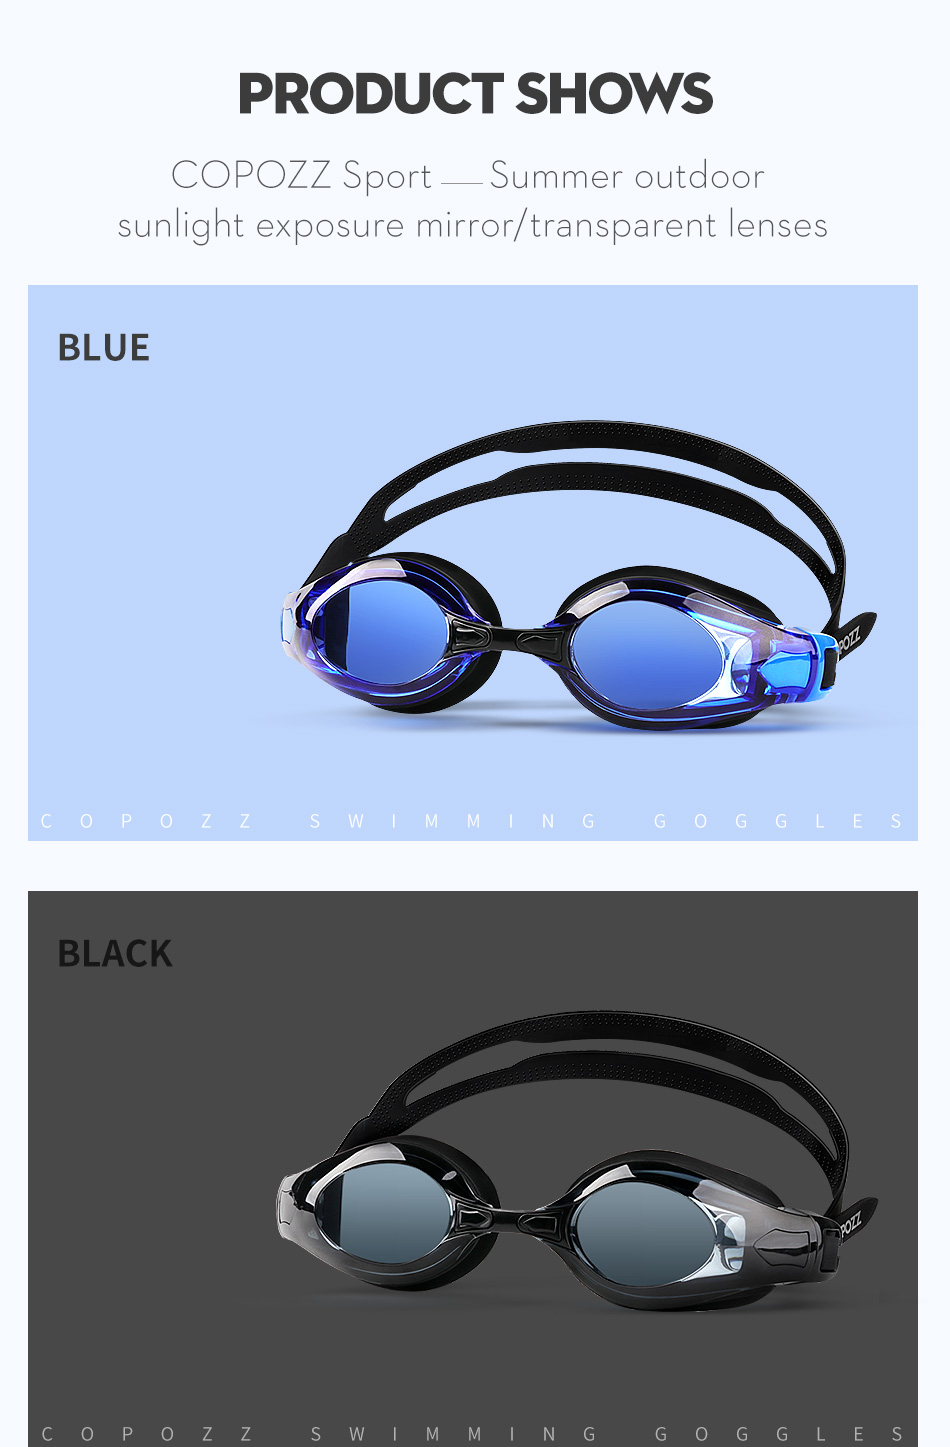 COPOZZ Myopia Pro Diopter Swimming Goggles 0 -1.5 to -8 With Double Anti Fog UV Protection 10